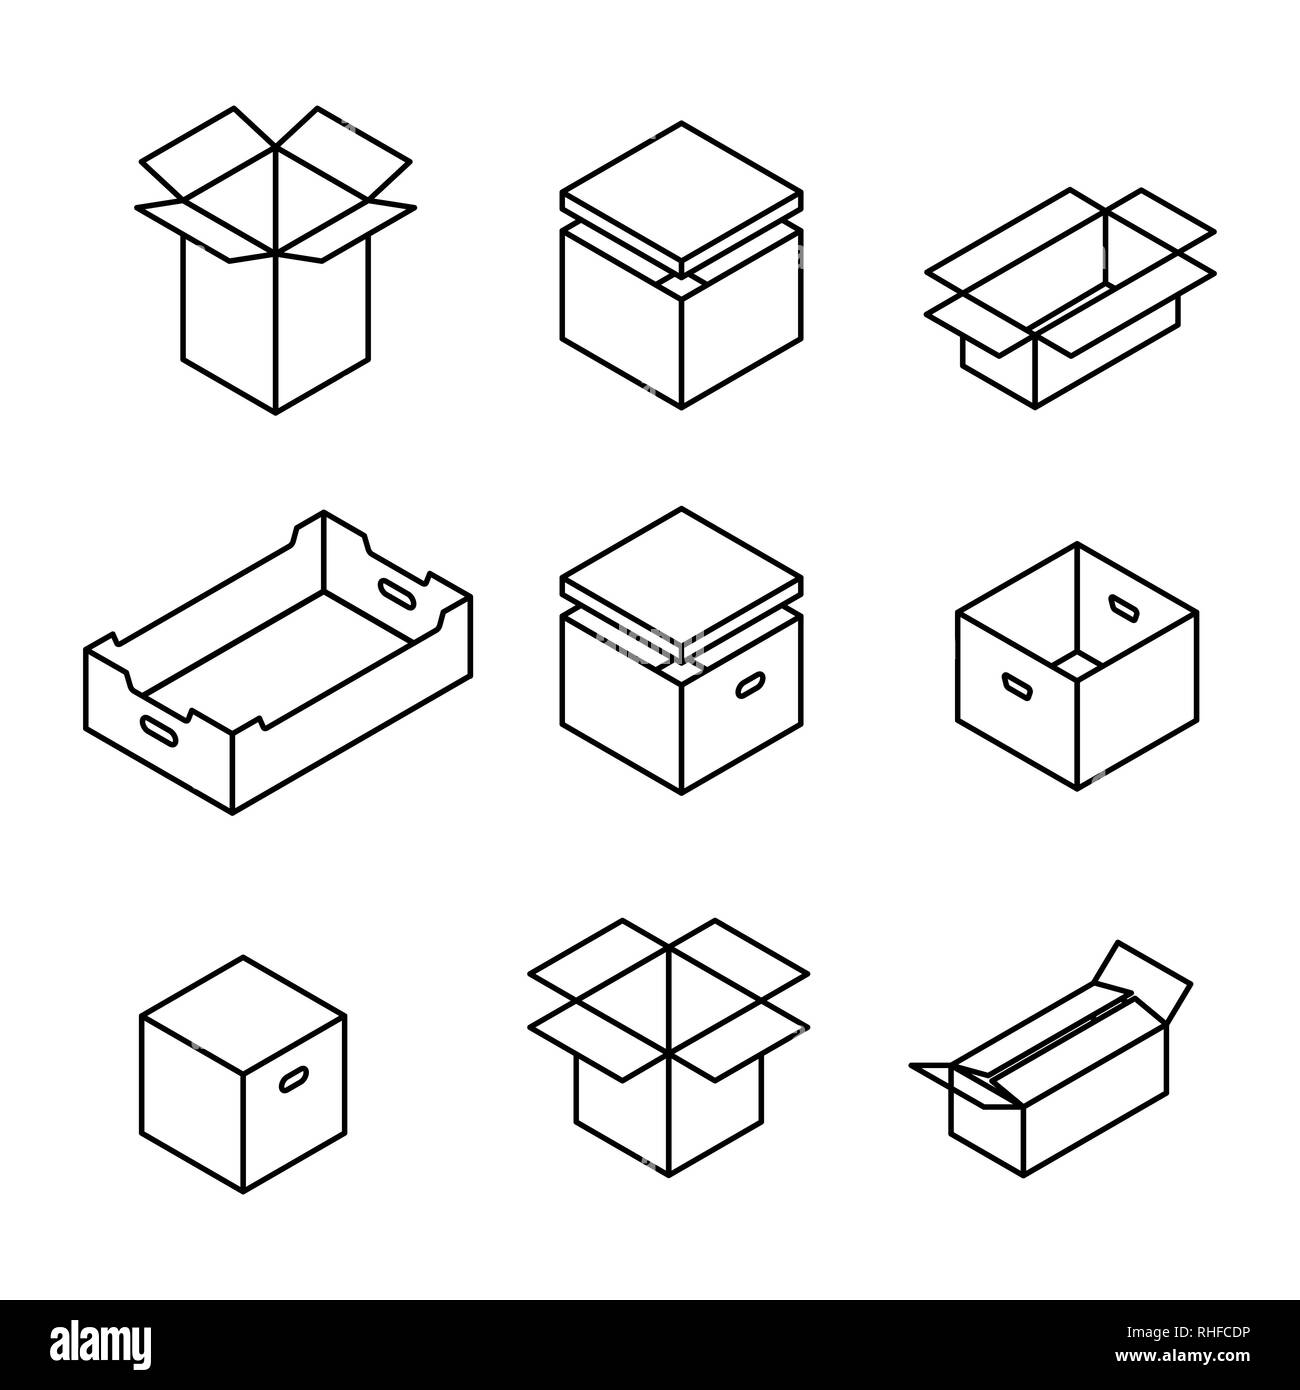 Set of different cardboard boxes from thin lines isolated on white background. Packaging design elements. Flat 3D isometric style, vector illustration - Stock Vector